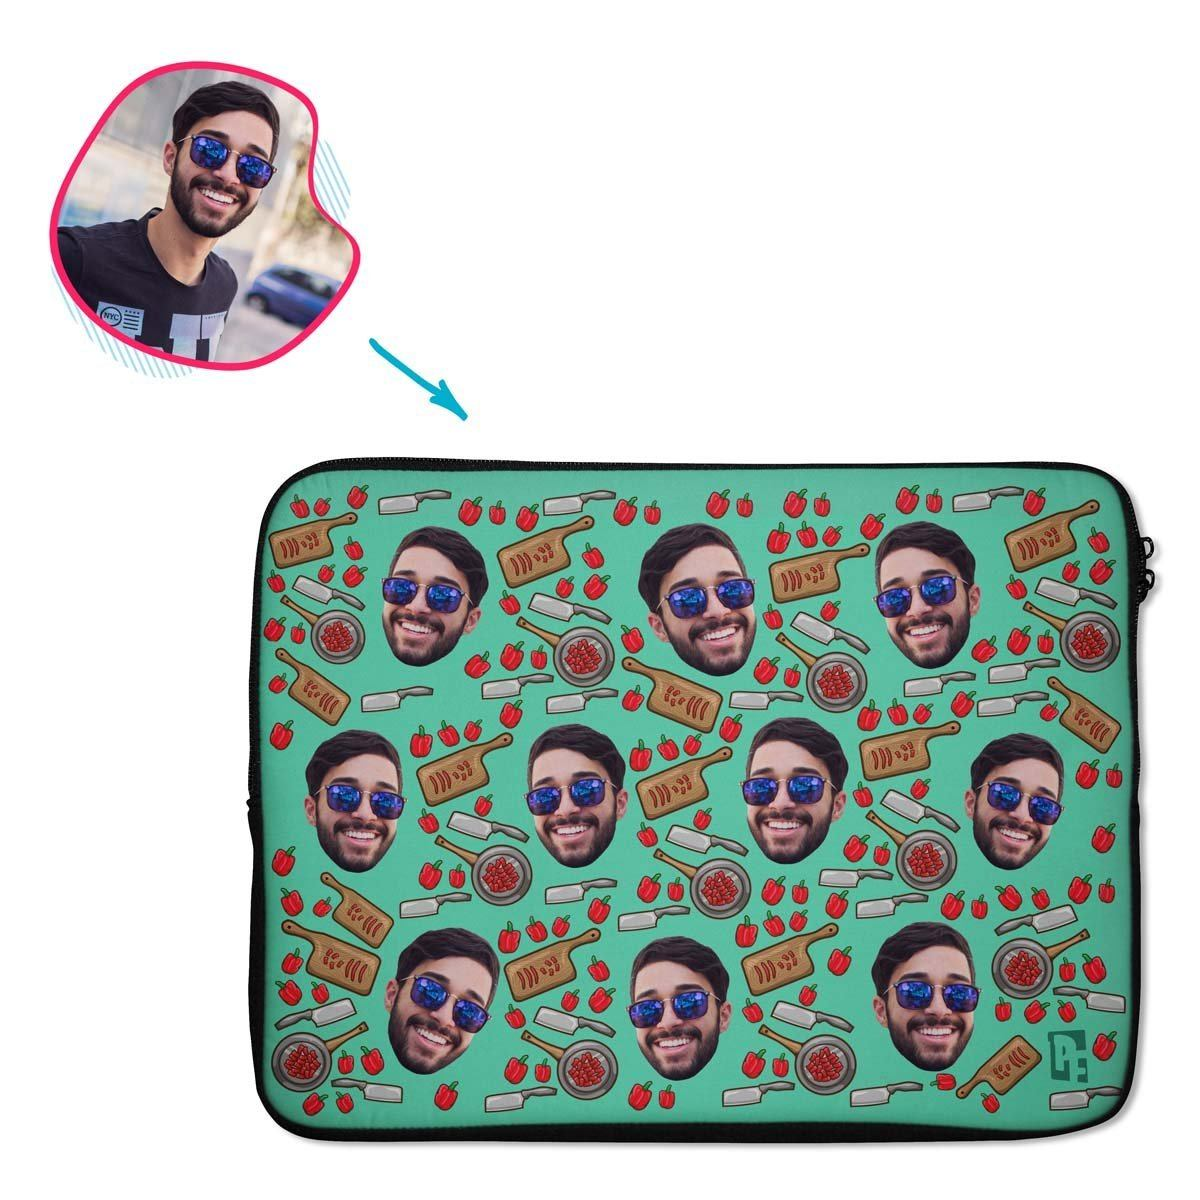 mint Сooking laptop sleeve personalized with photo of face printed on them